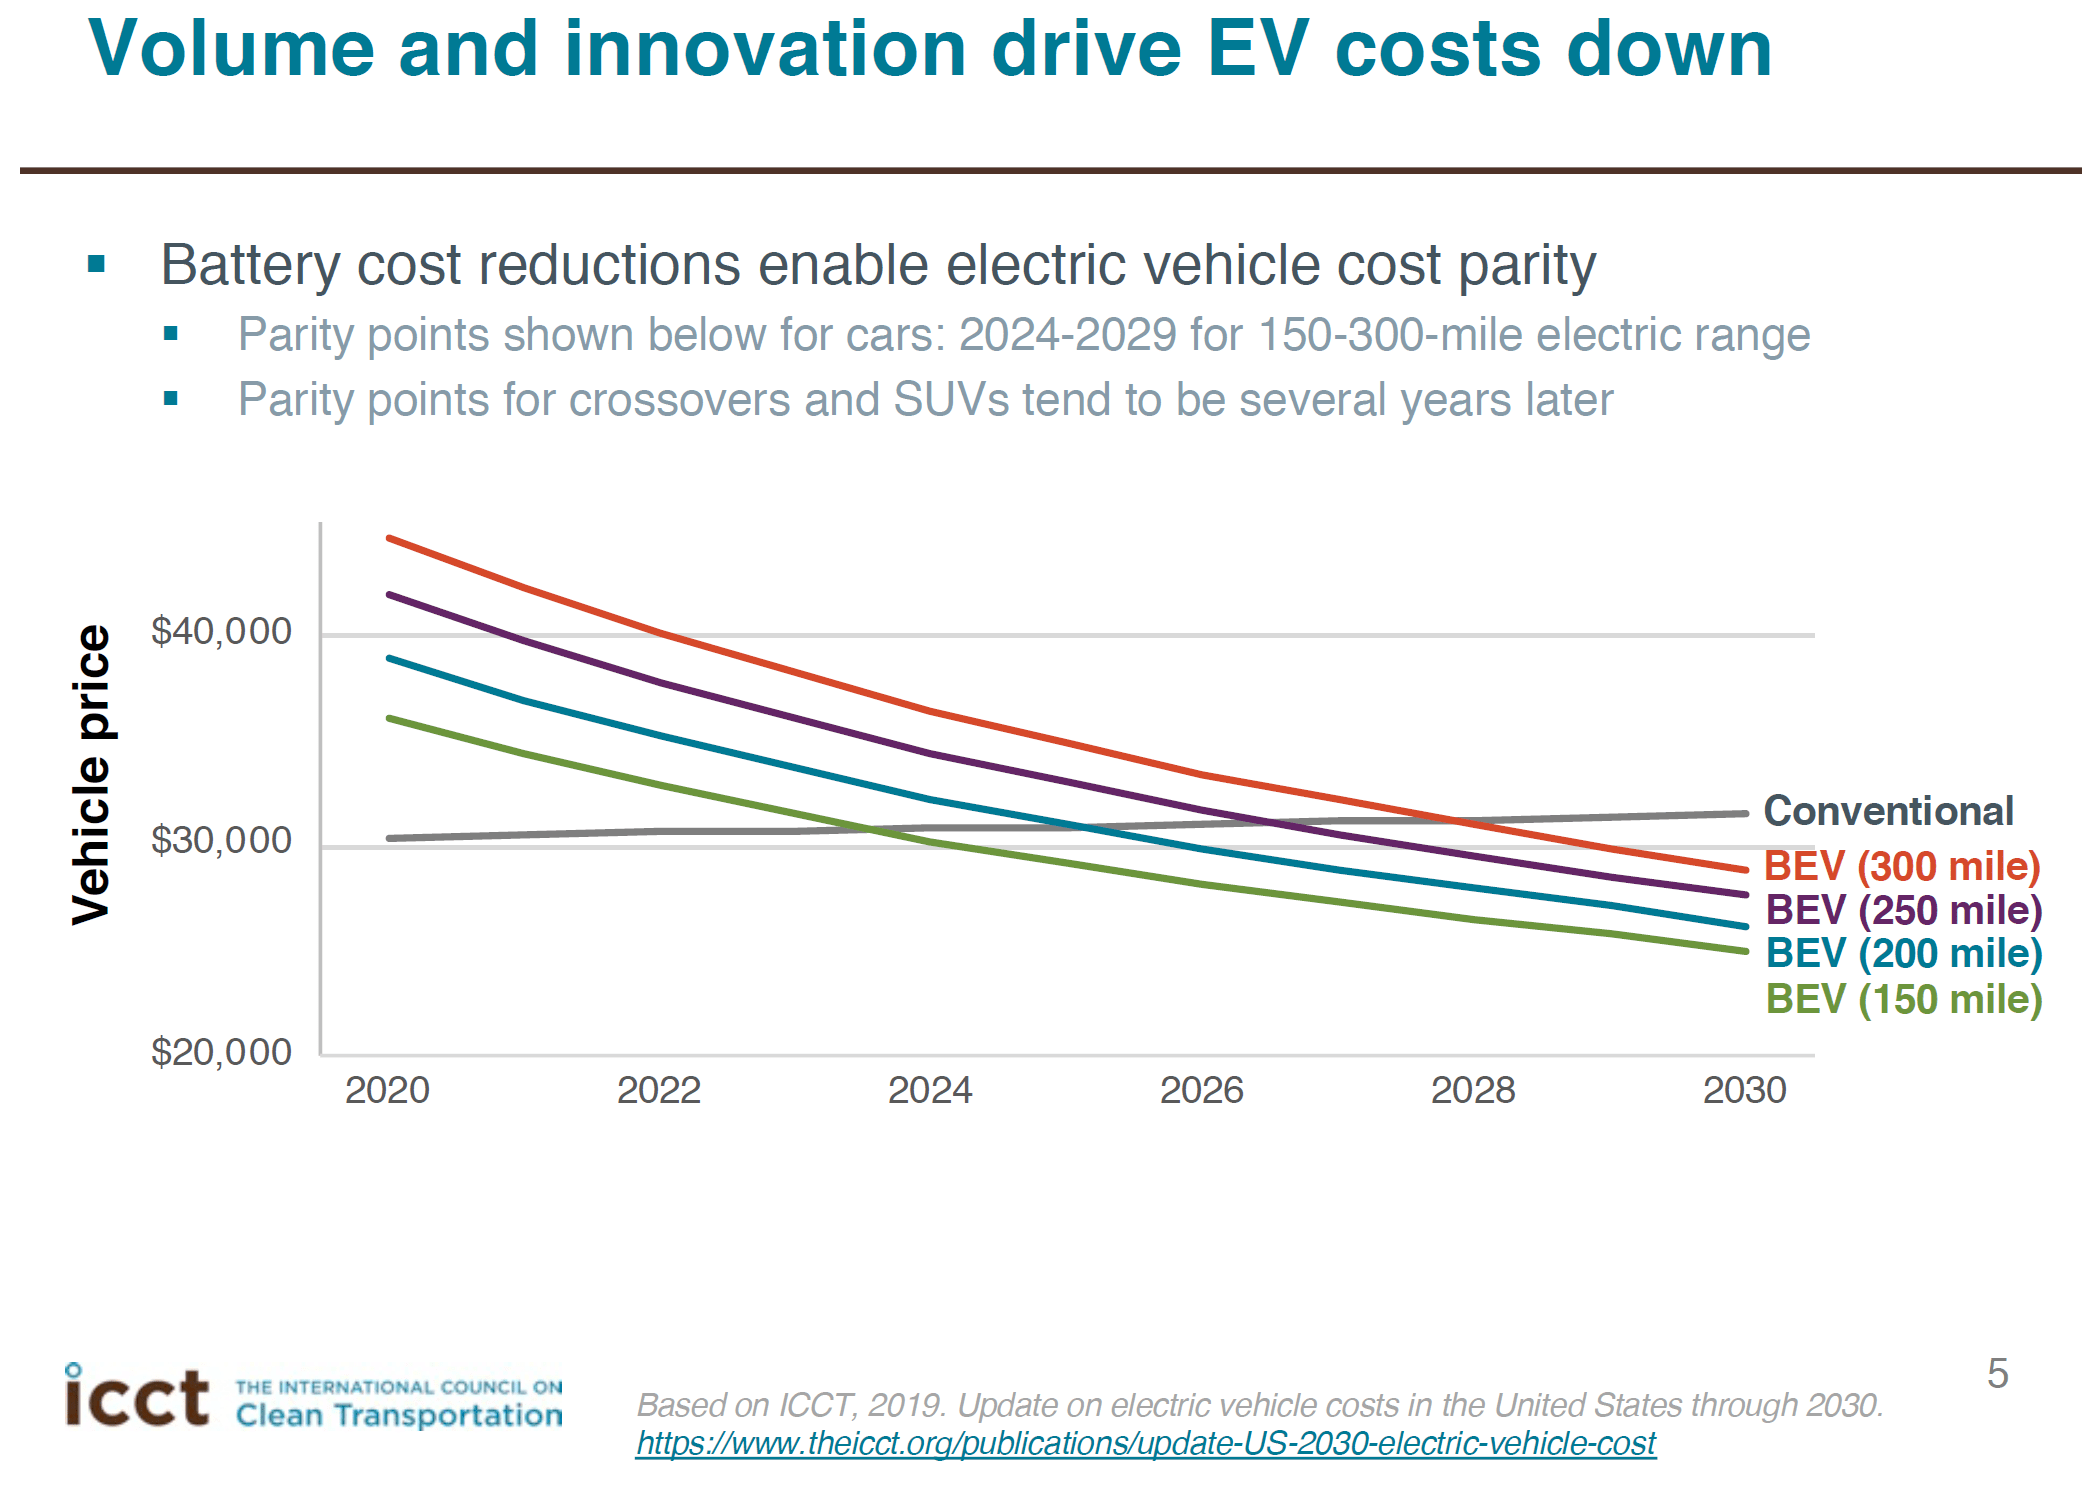 Volume and İnnovation Drive EV Costs Down